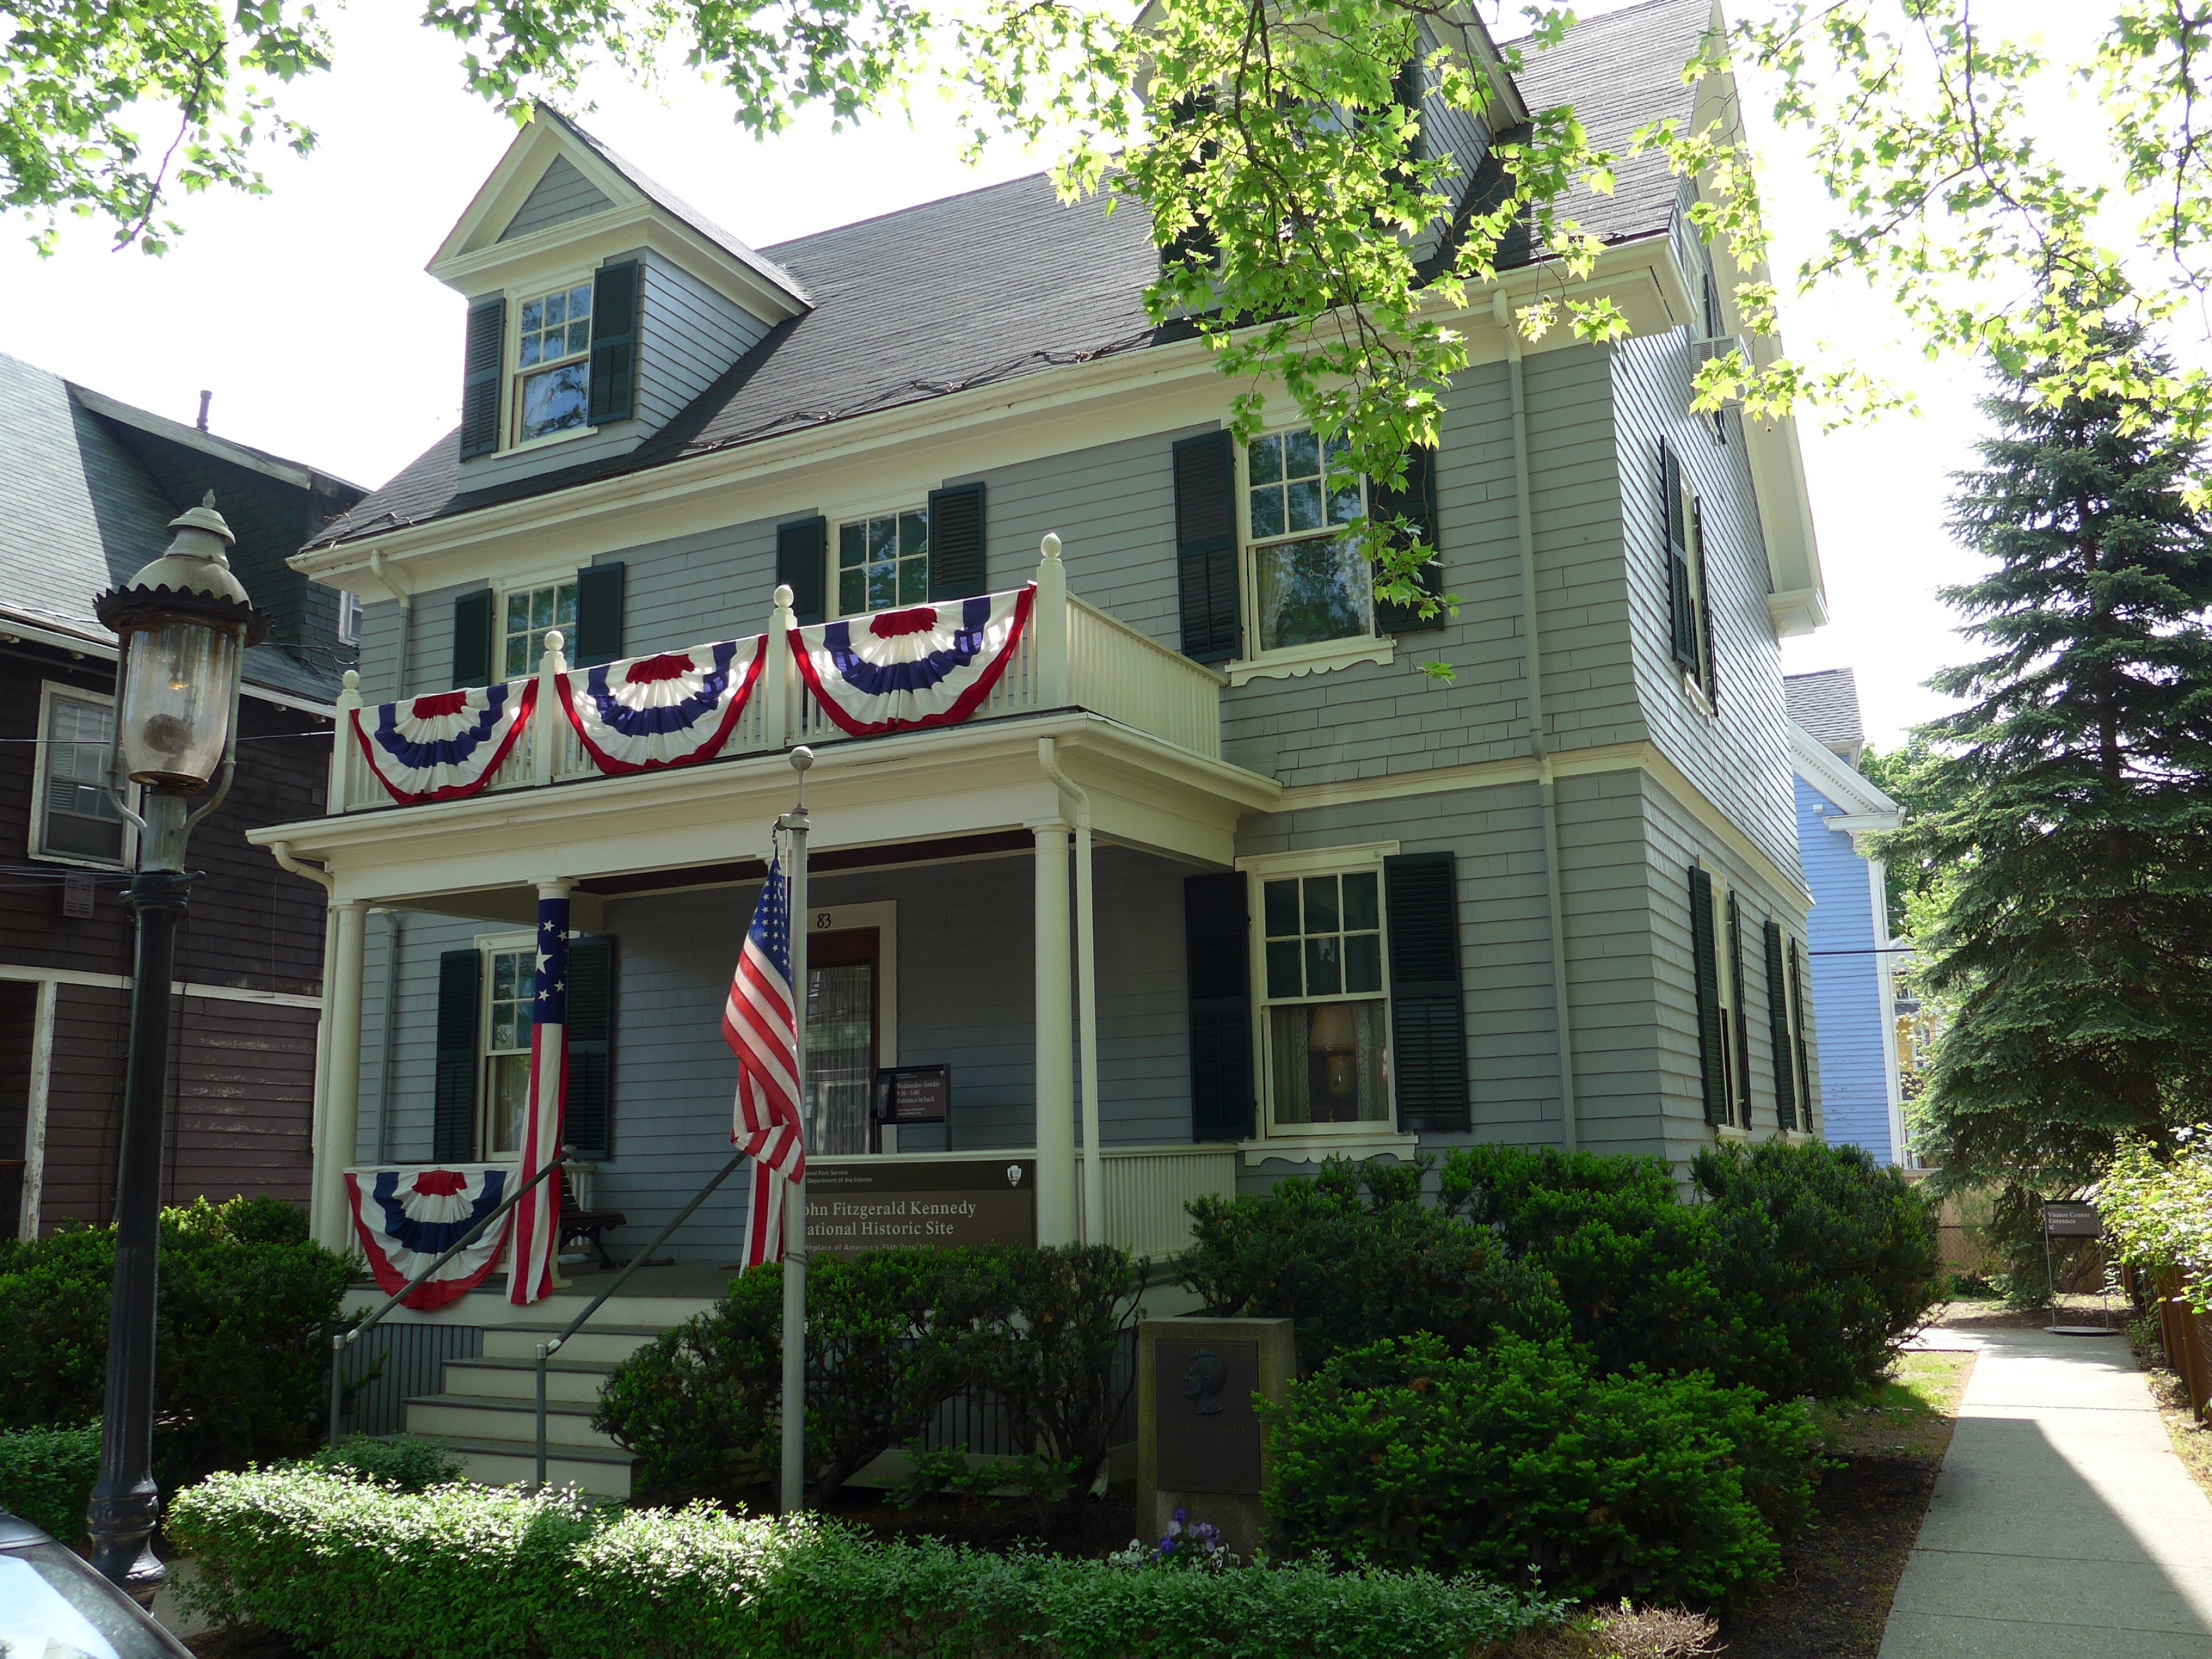 The front of the two-story house with red, white, and blue half-circle flags adorning the banisters at John F. Kennedy National Historic Site